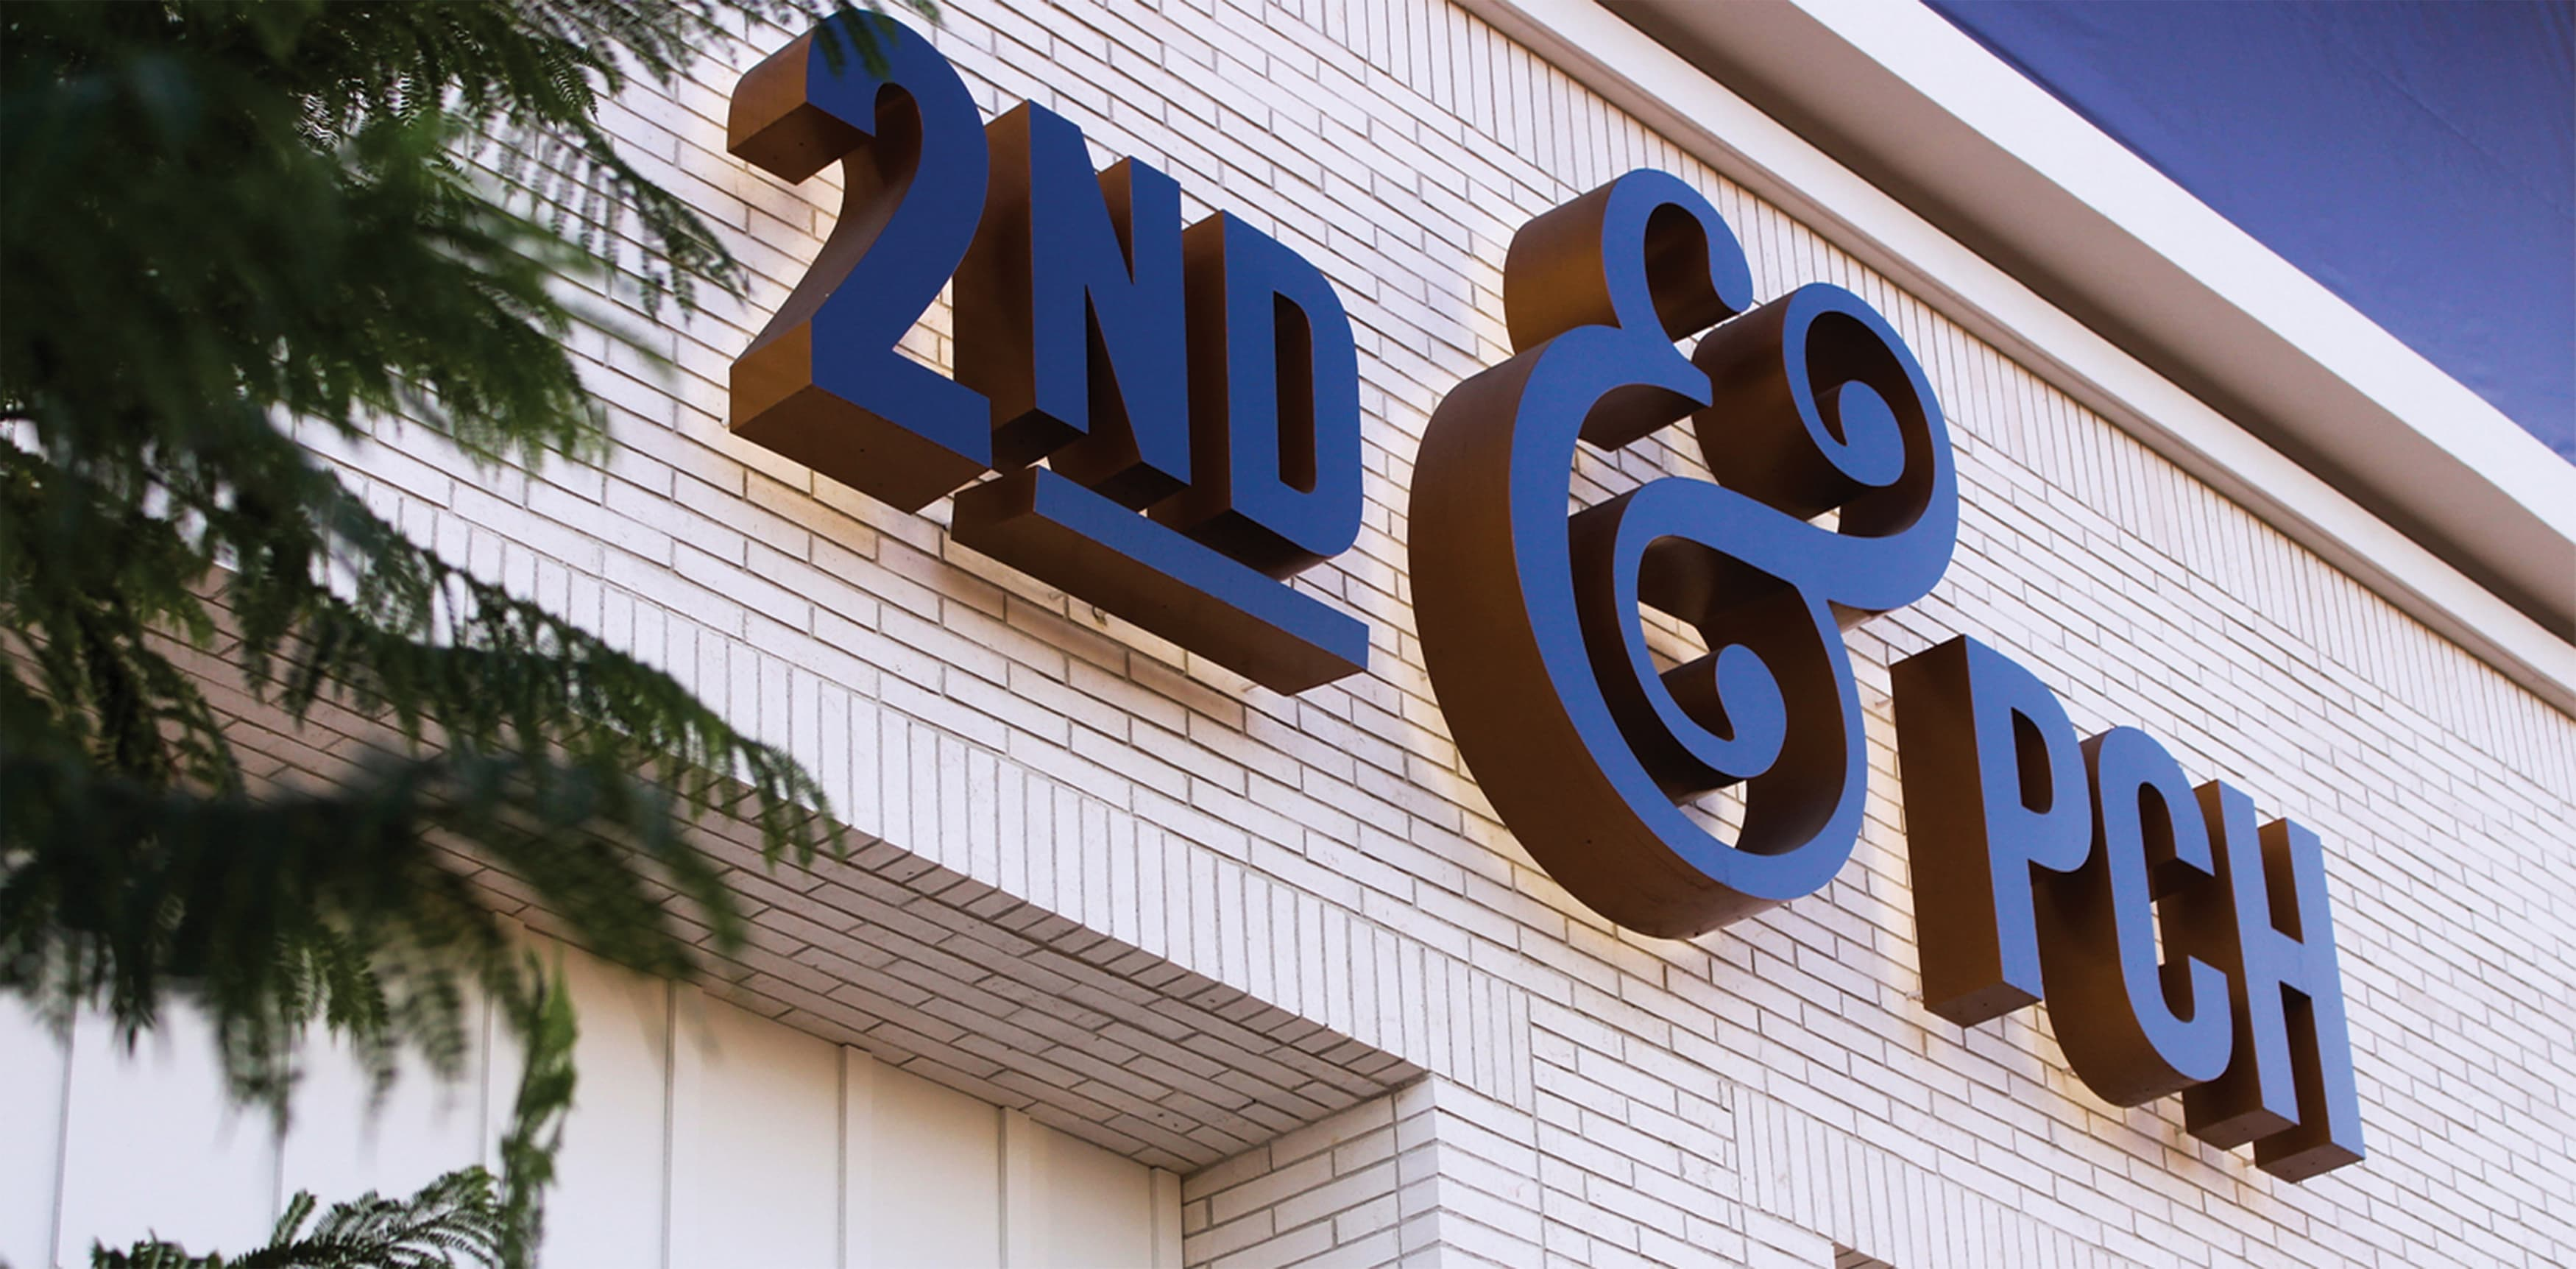 2nd & PCH project identity signage